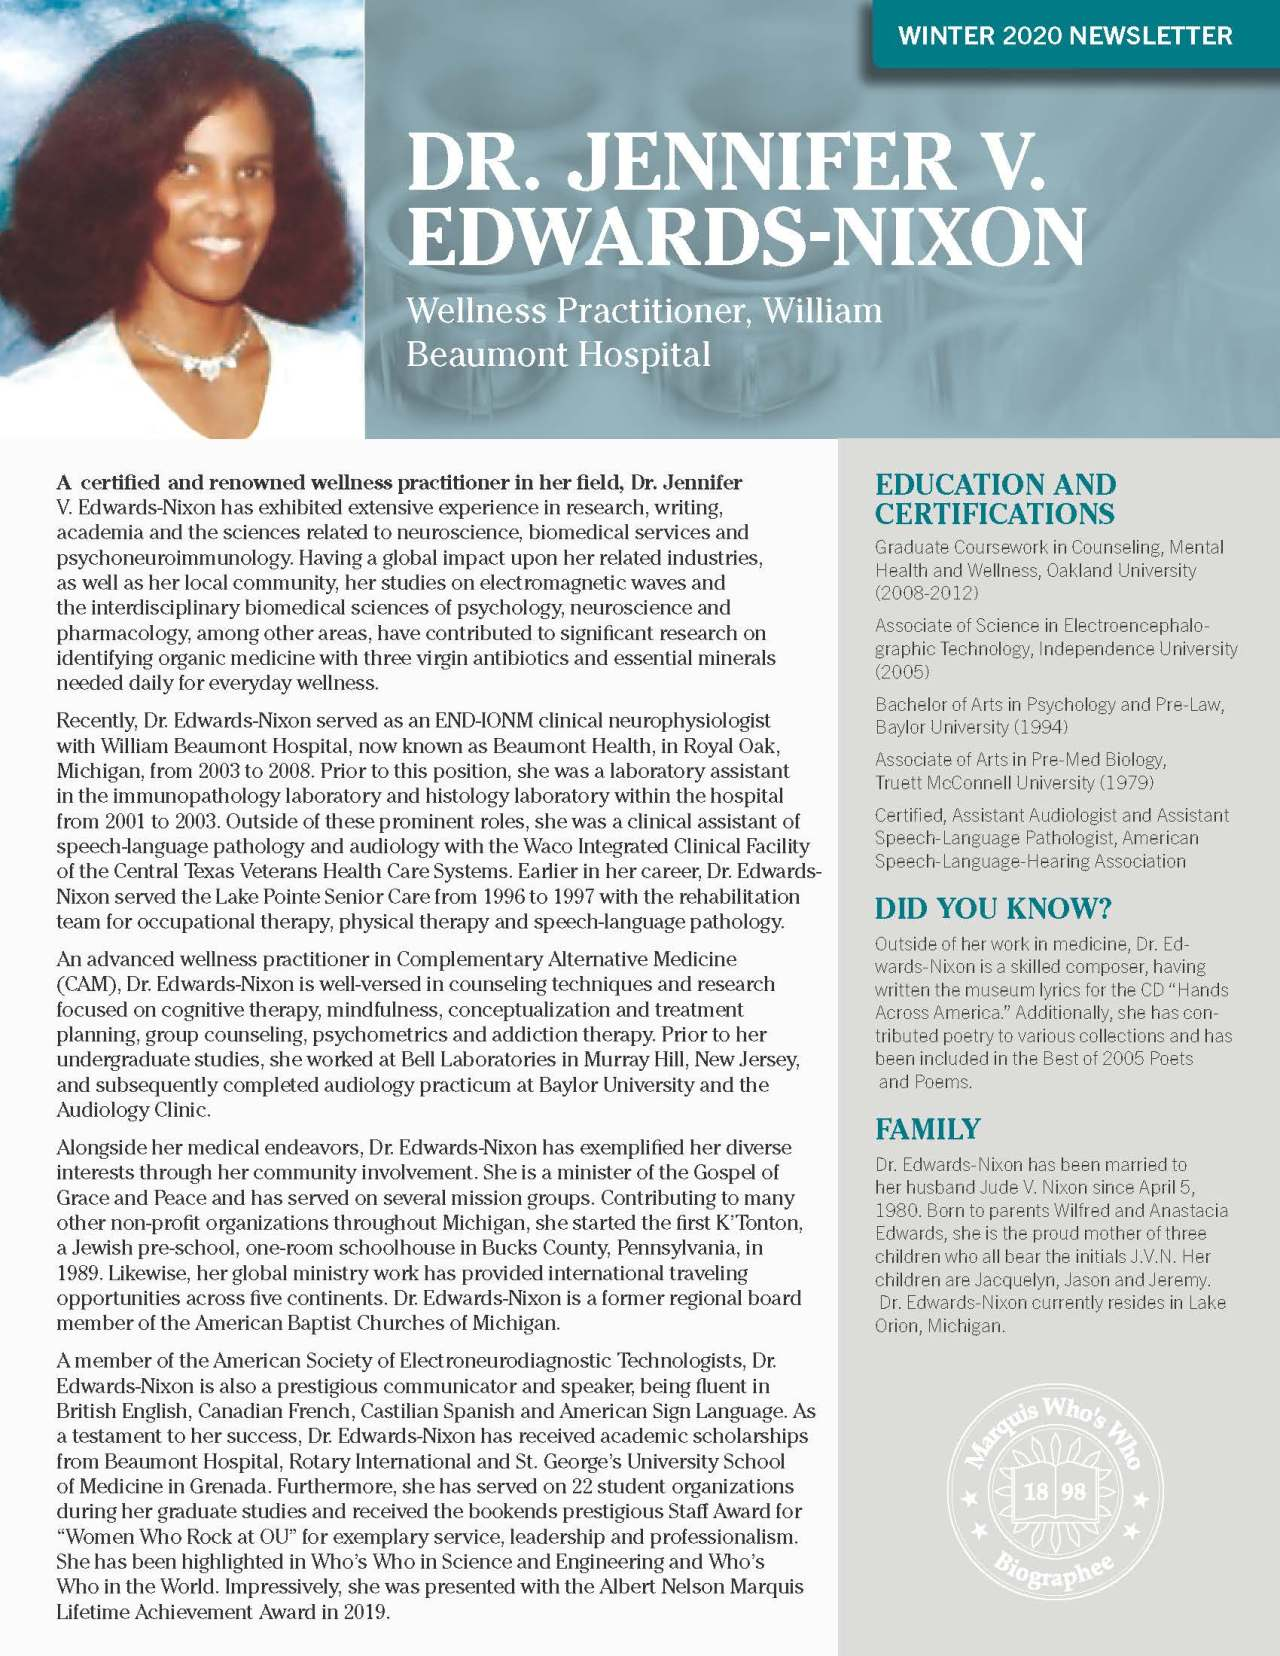 Edwards-Nixon, Jennifer 4294406_31954530 Newsletter